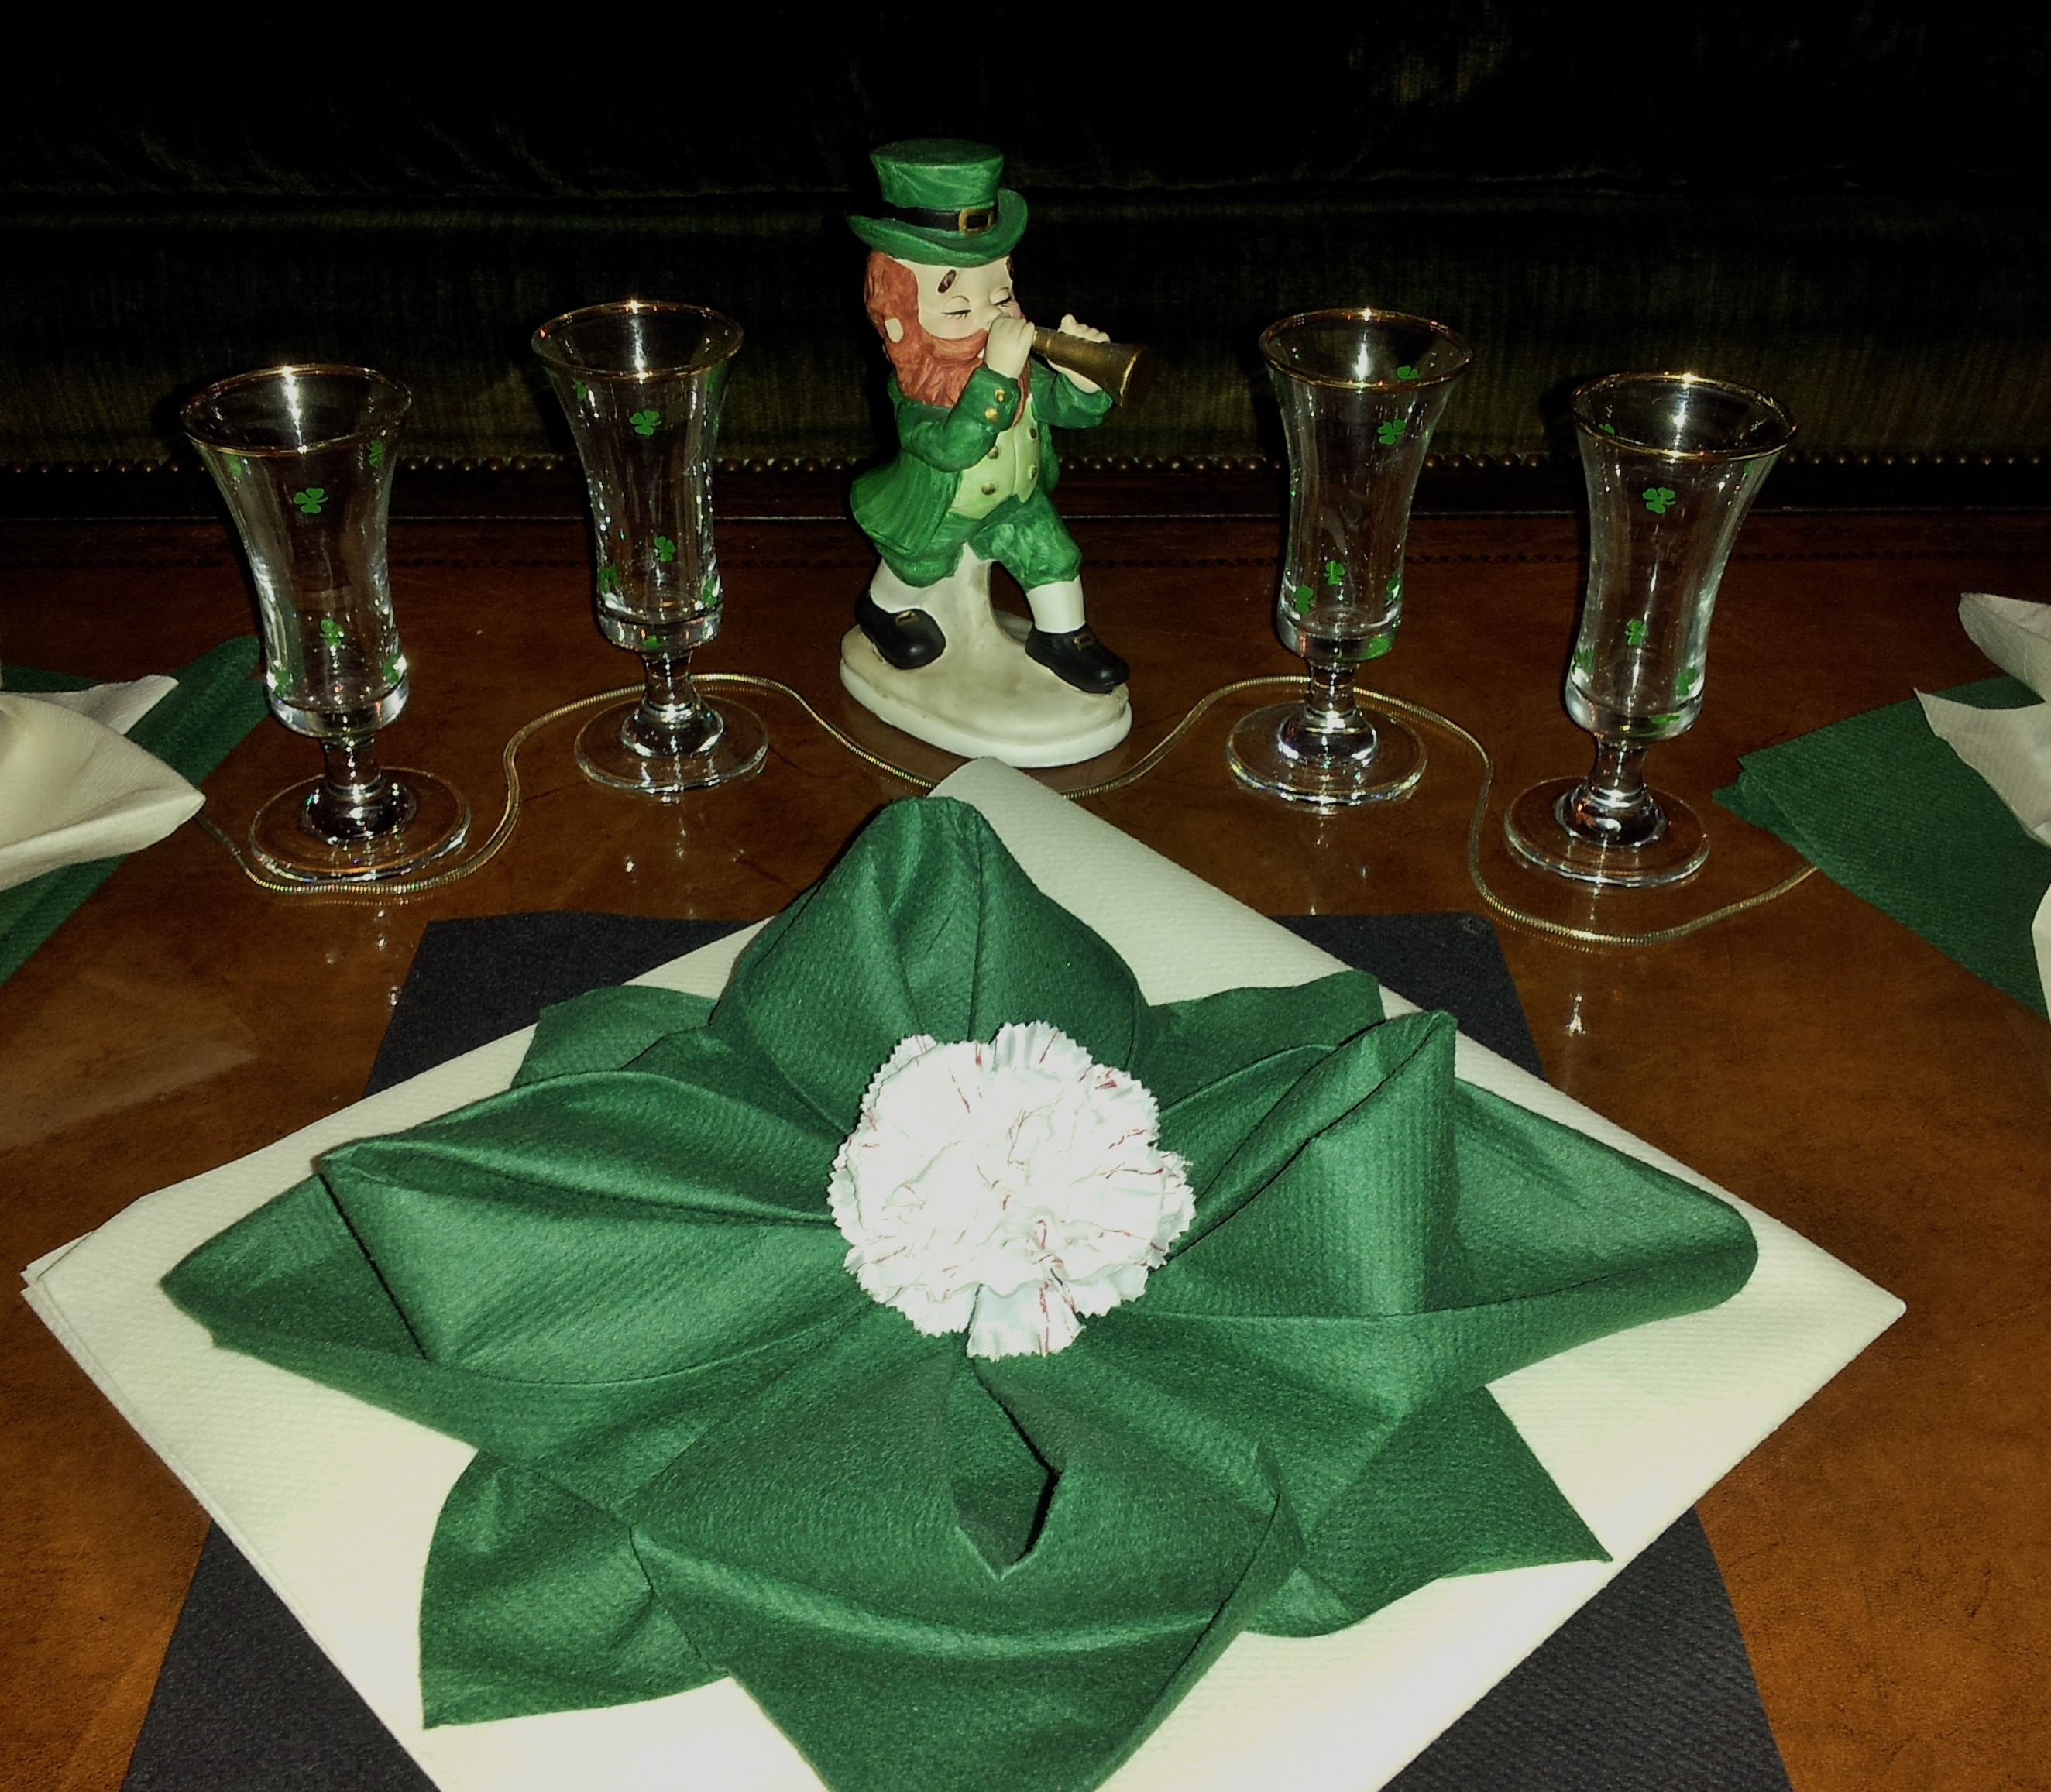 Affordable & fun way to decorate your table!